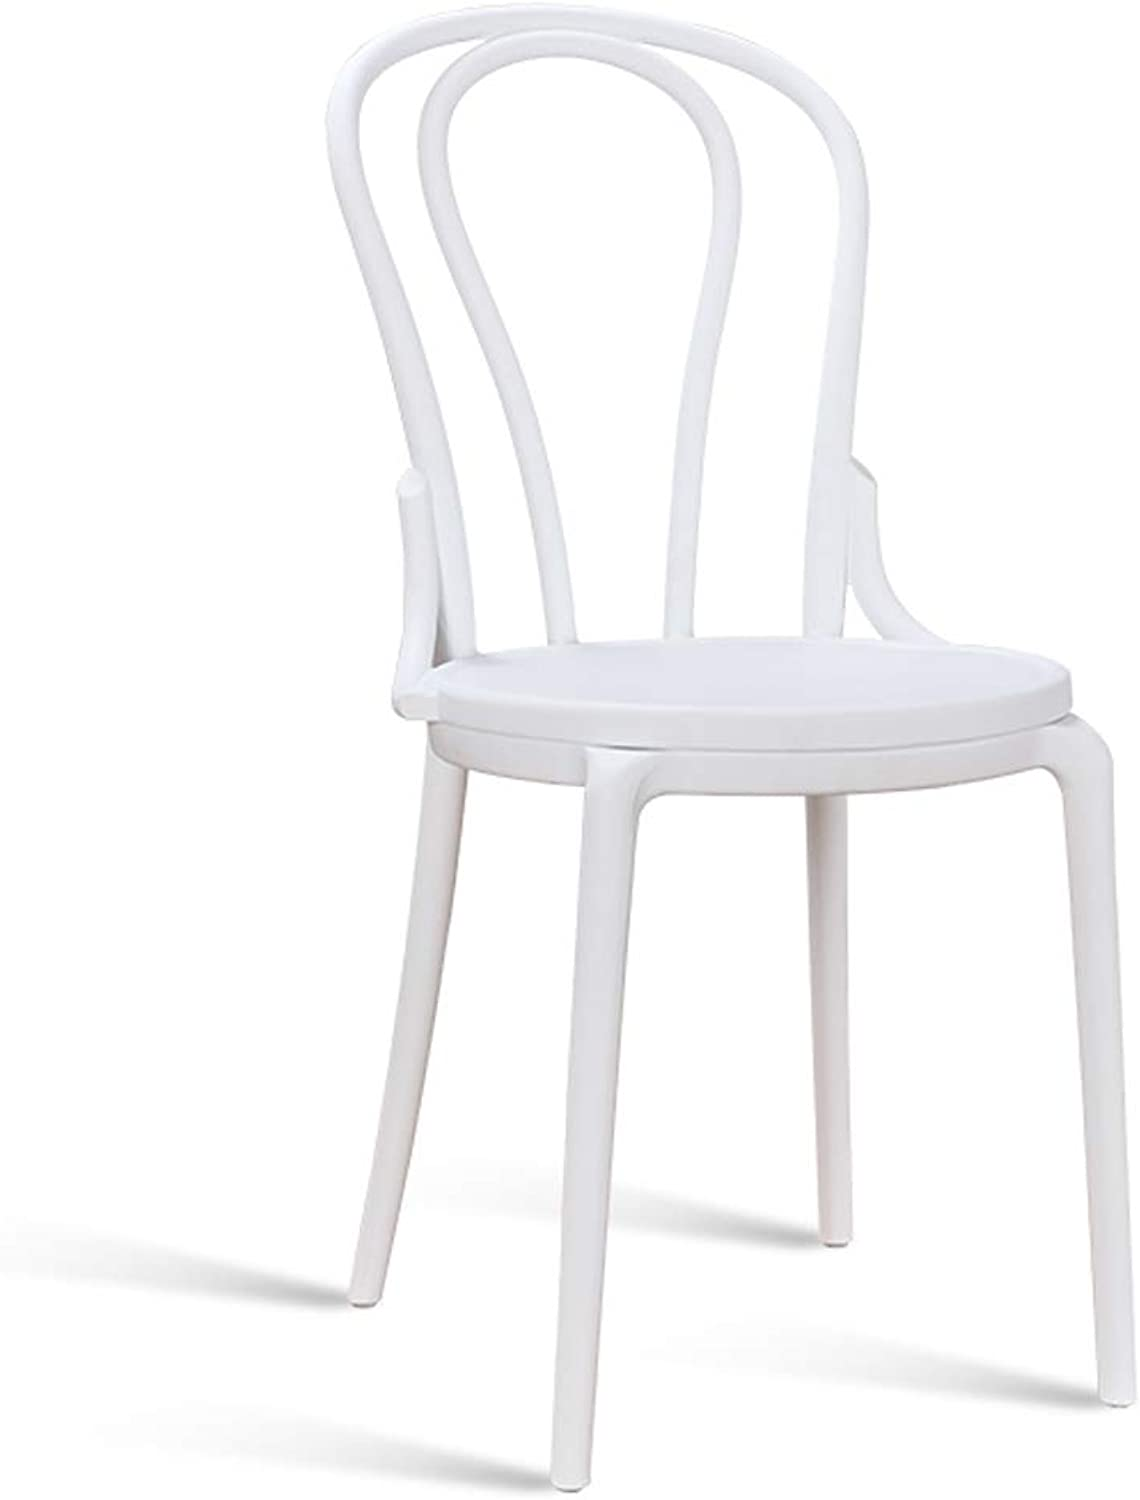 LRW Simple Pastoral American Leisure Creative Dining Chair, Fashionable Coffee Shop, Plastic Backrest Chair, White